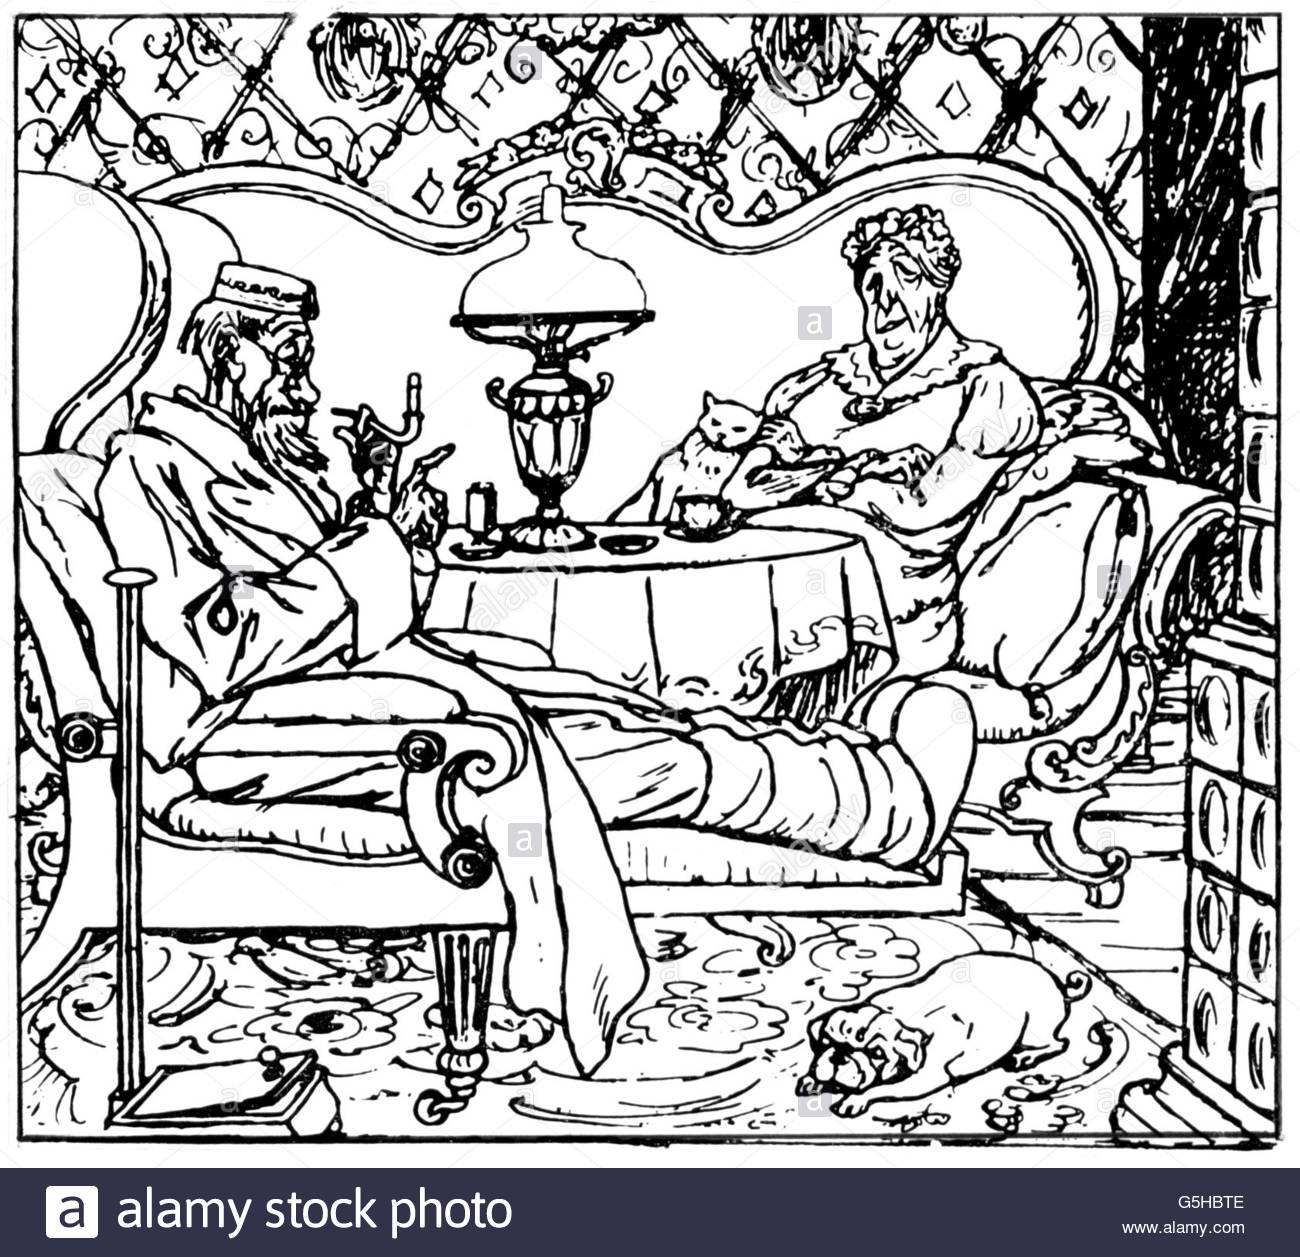 old man 1920s stock photos old man 1920s stock images alamy 1920s Picnic Basket medicine disease gout wenn man alt wird when you are